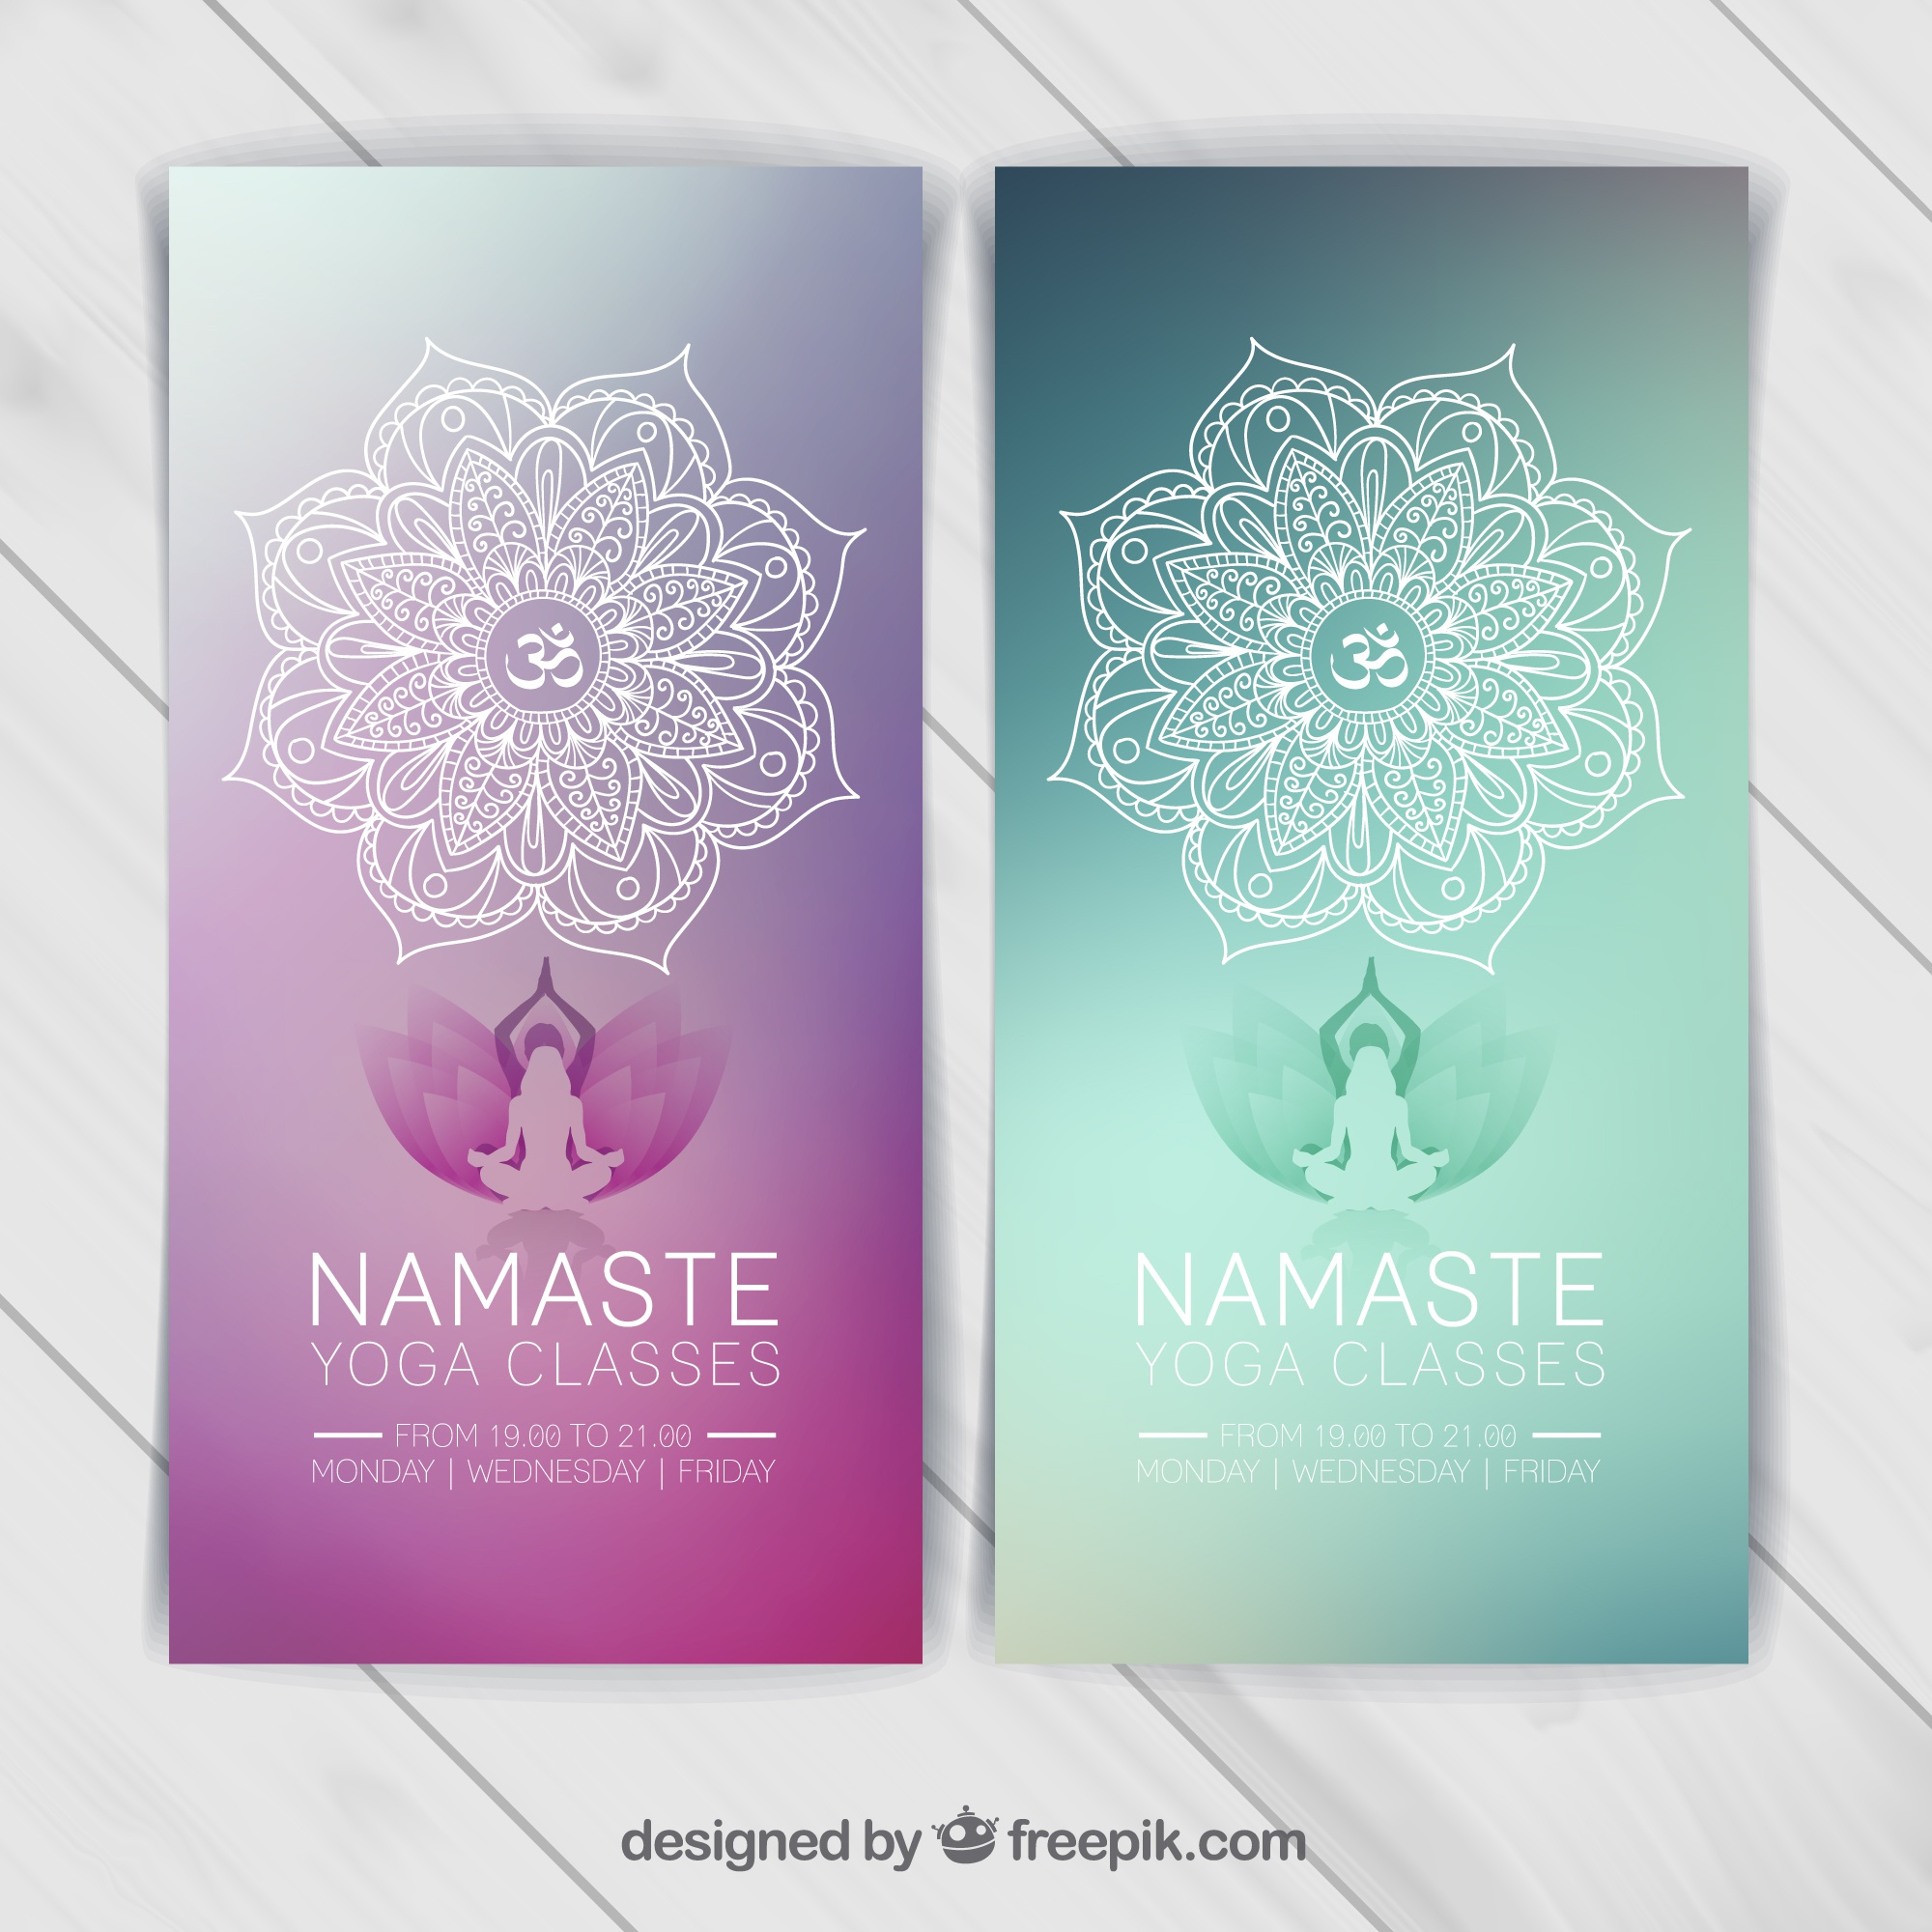 Yoga banners template